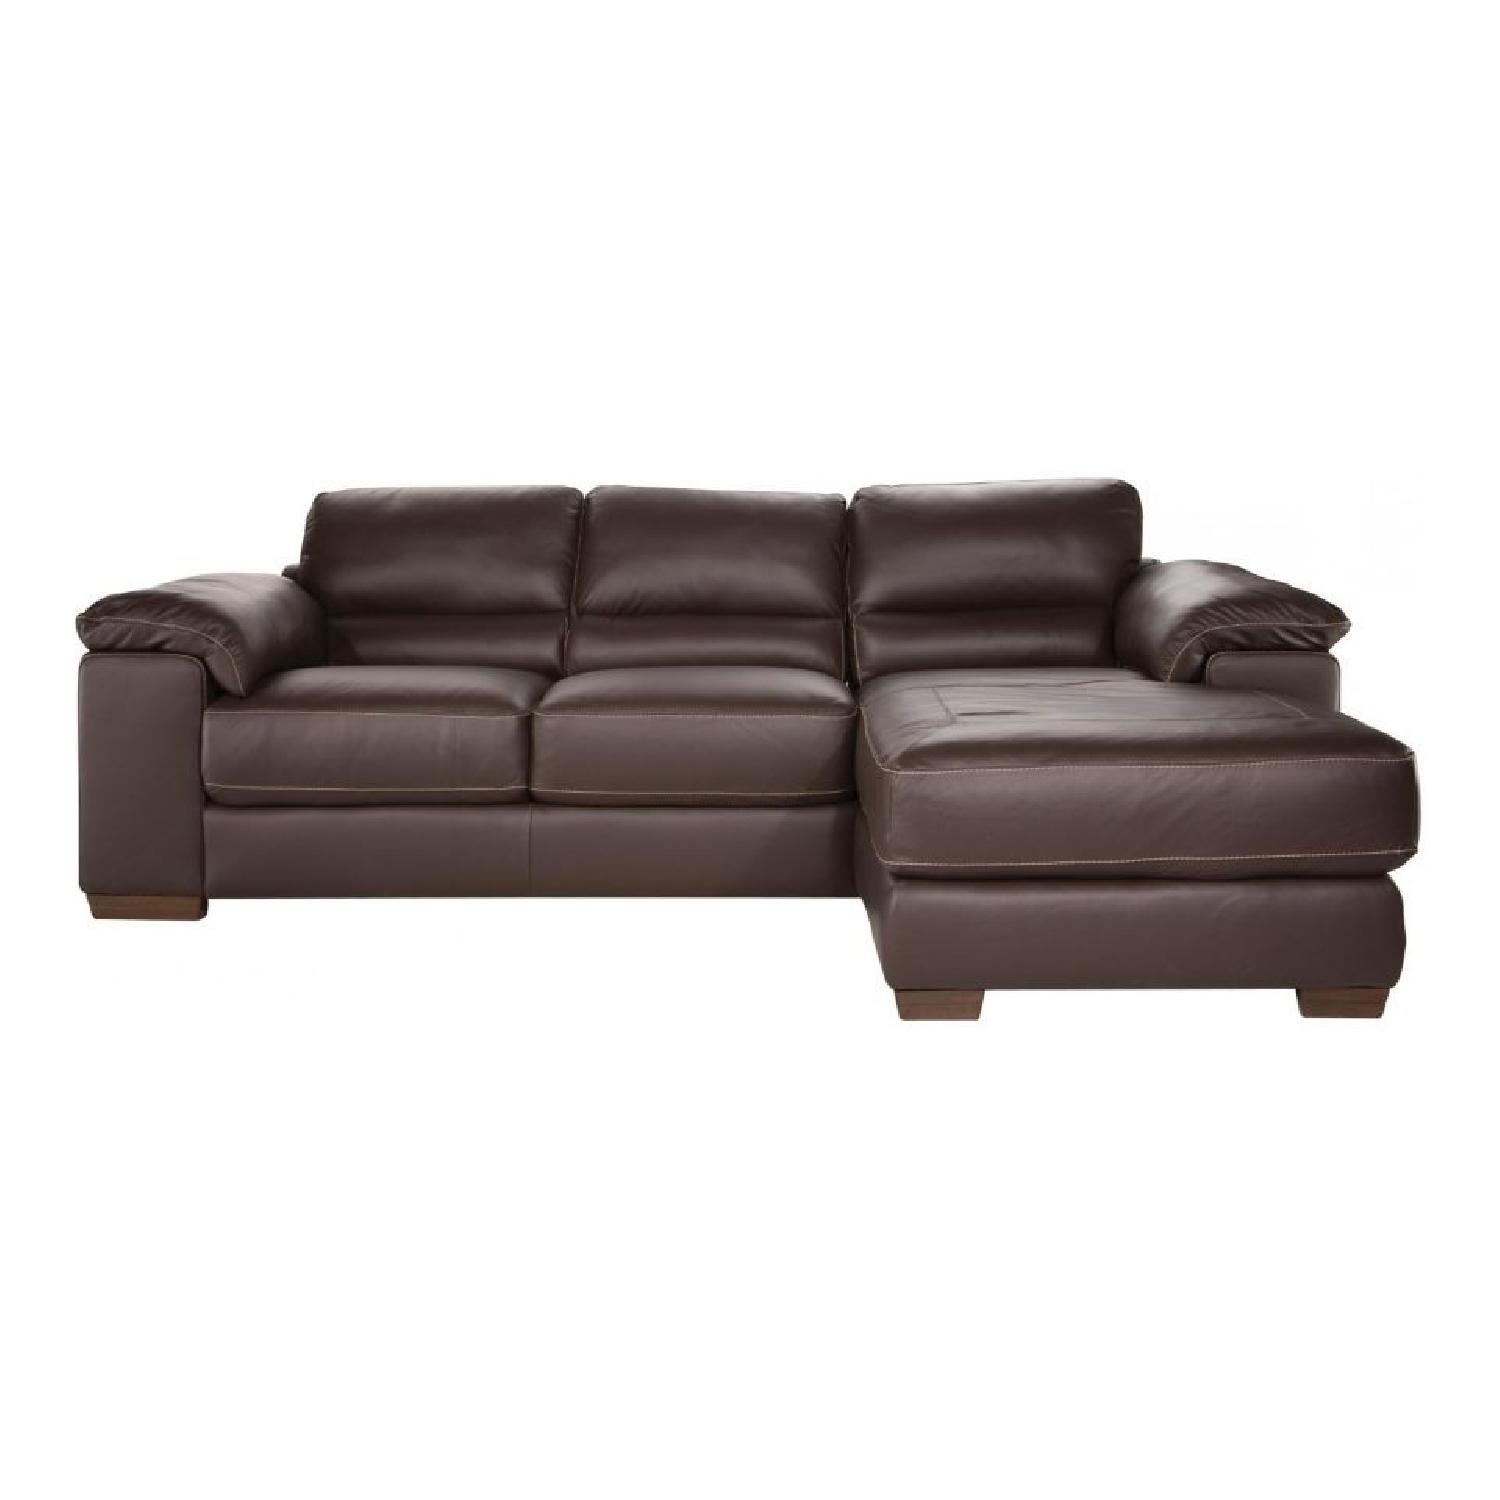 Raymour & Flanigan Leather Recliner Sectional Sofa + Chair - image-0